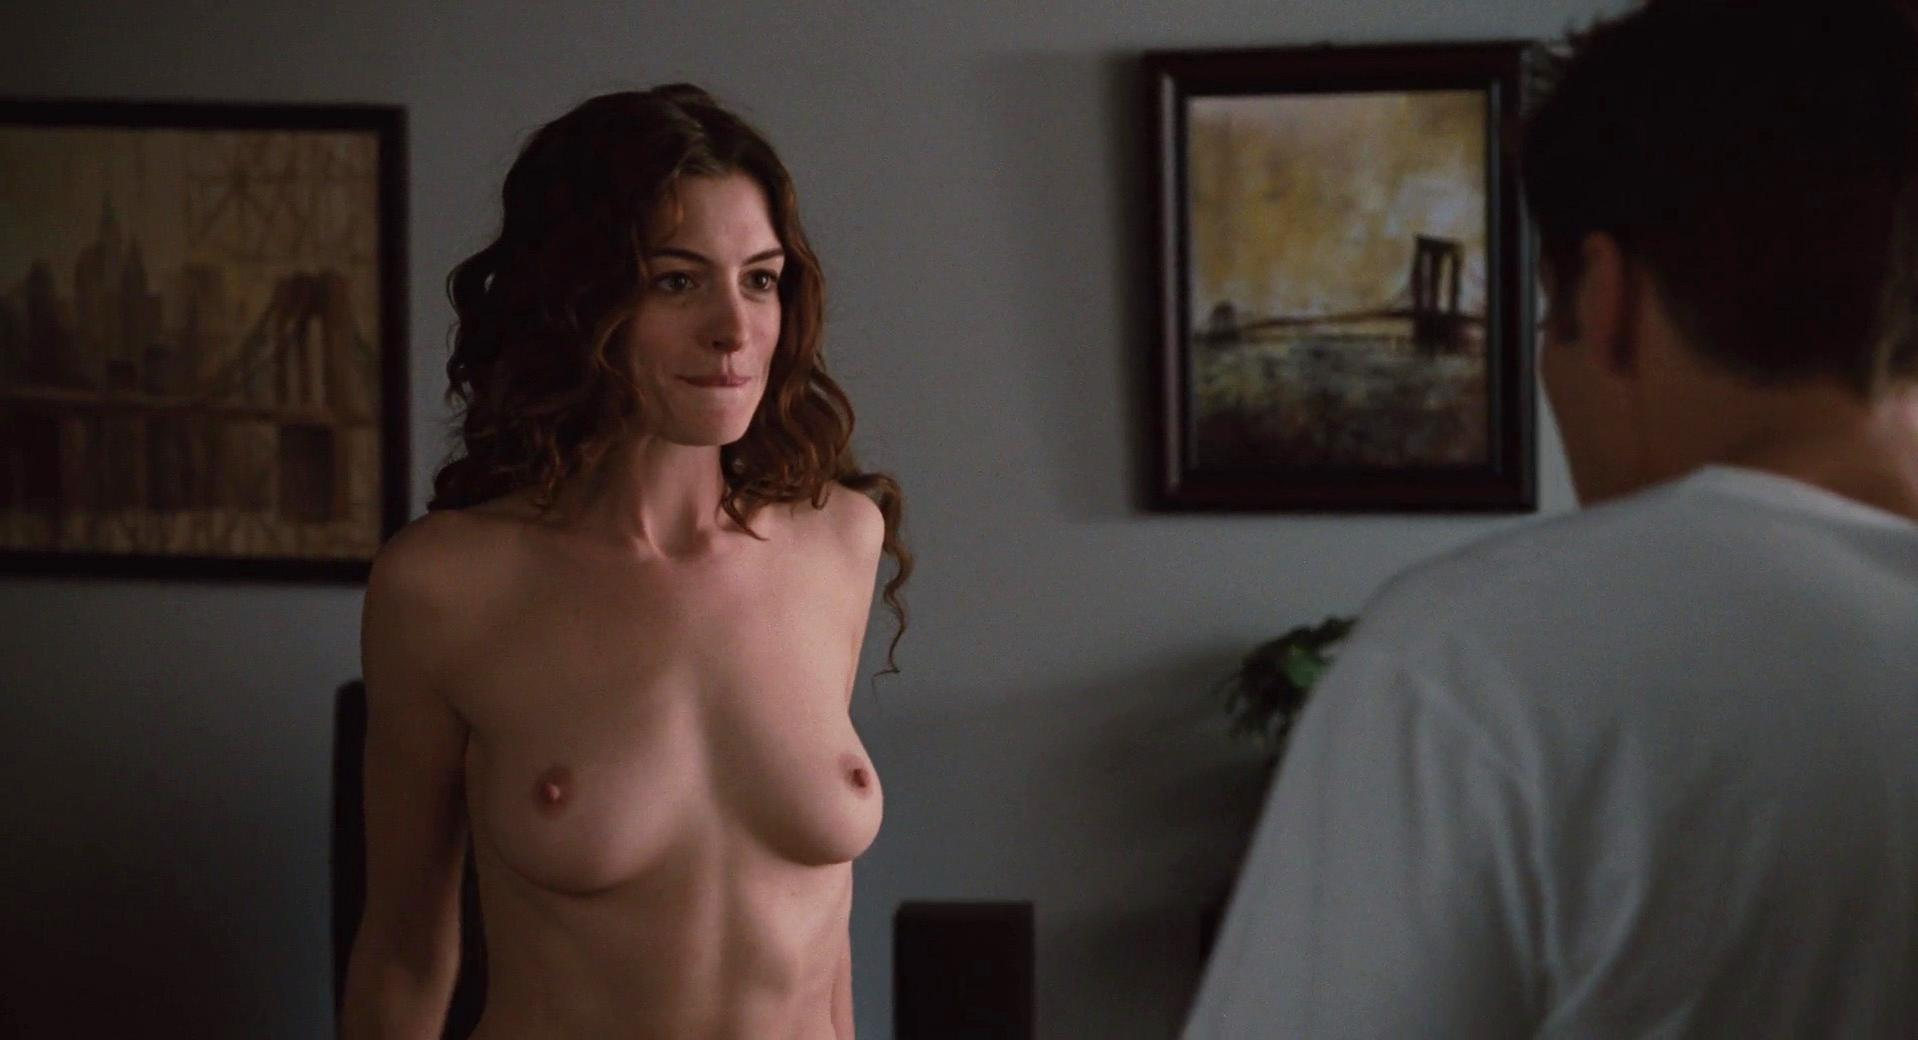 naked porn sex pic